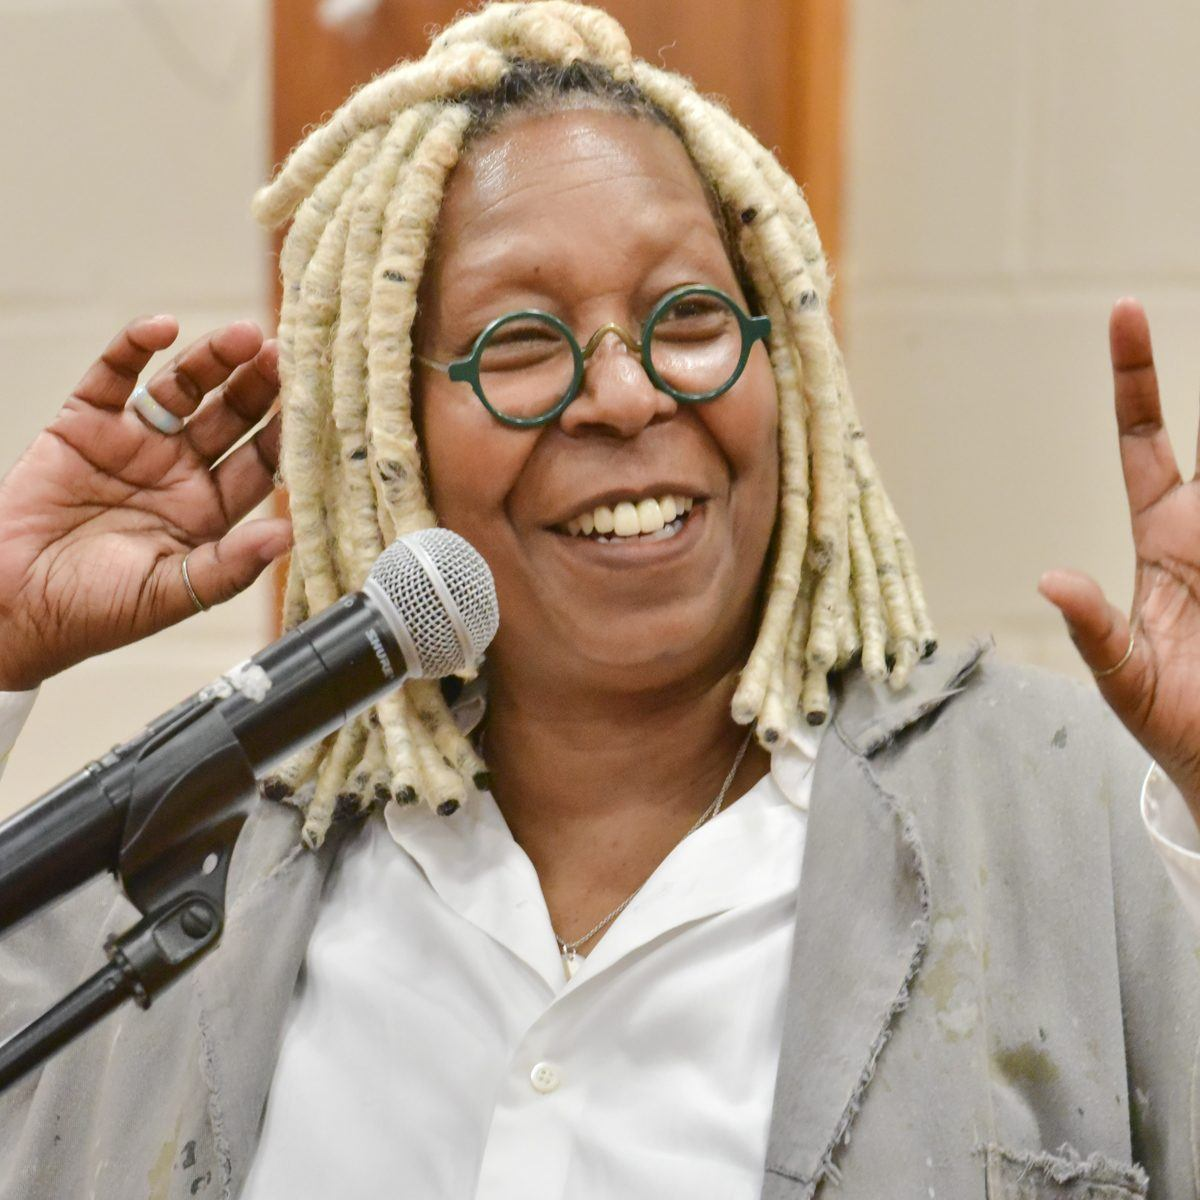 Whoopi Goldberg Lecture 7890 Back In The Habit Again: Sister Act 3 In The Works, Says Whoopi Goldberg